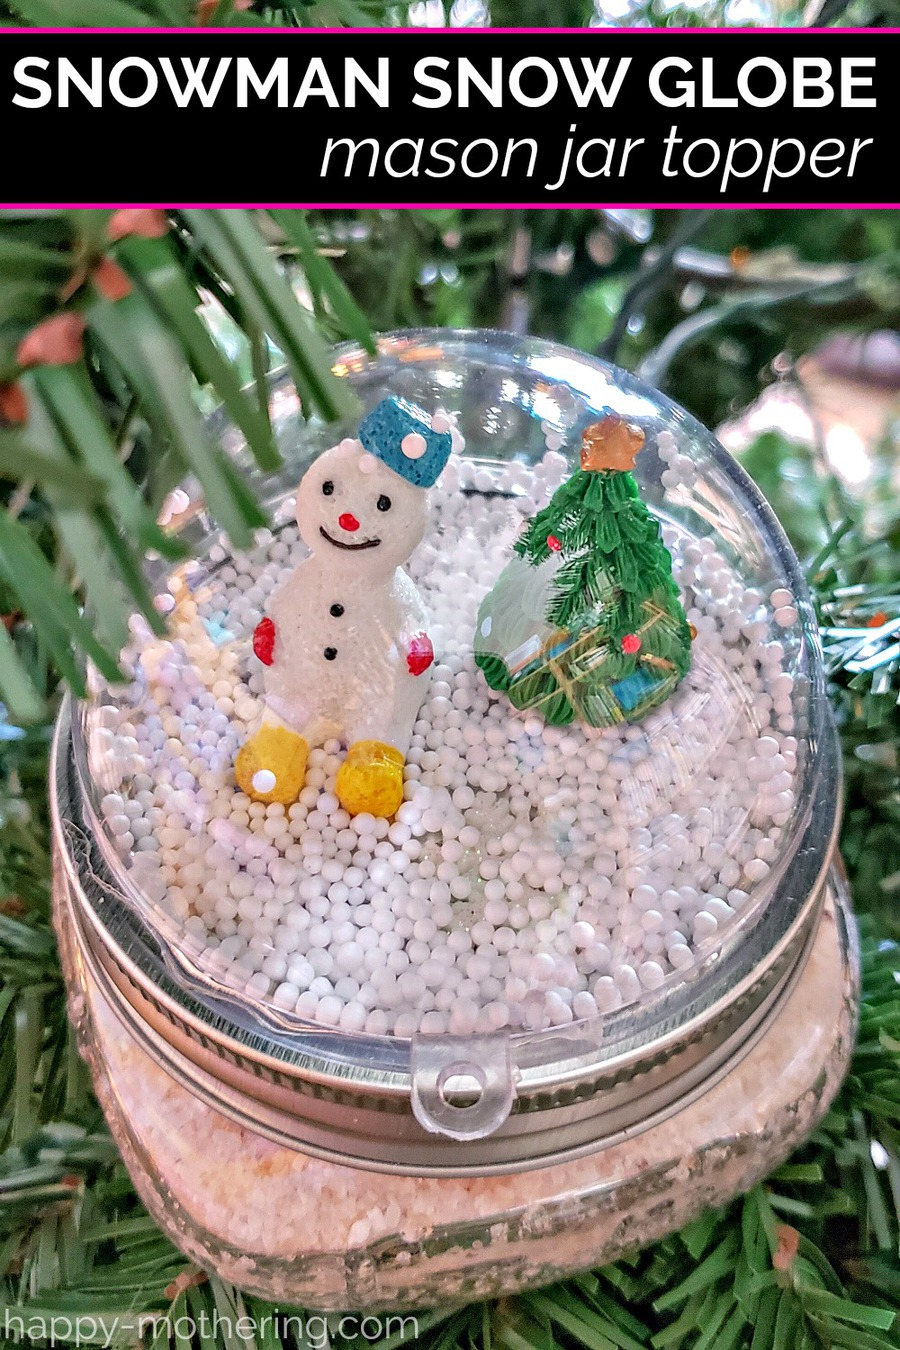 Are you looking for fun ideas to dress up your handmade gifts? Learn how to make DIY Snow Globe Mason Jar Toppers. They're the perfect way to personalize your homemade gift for the holidays. You can customize them for kids of all ages.